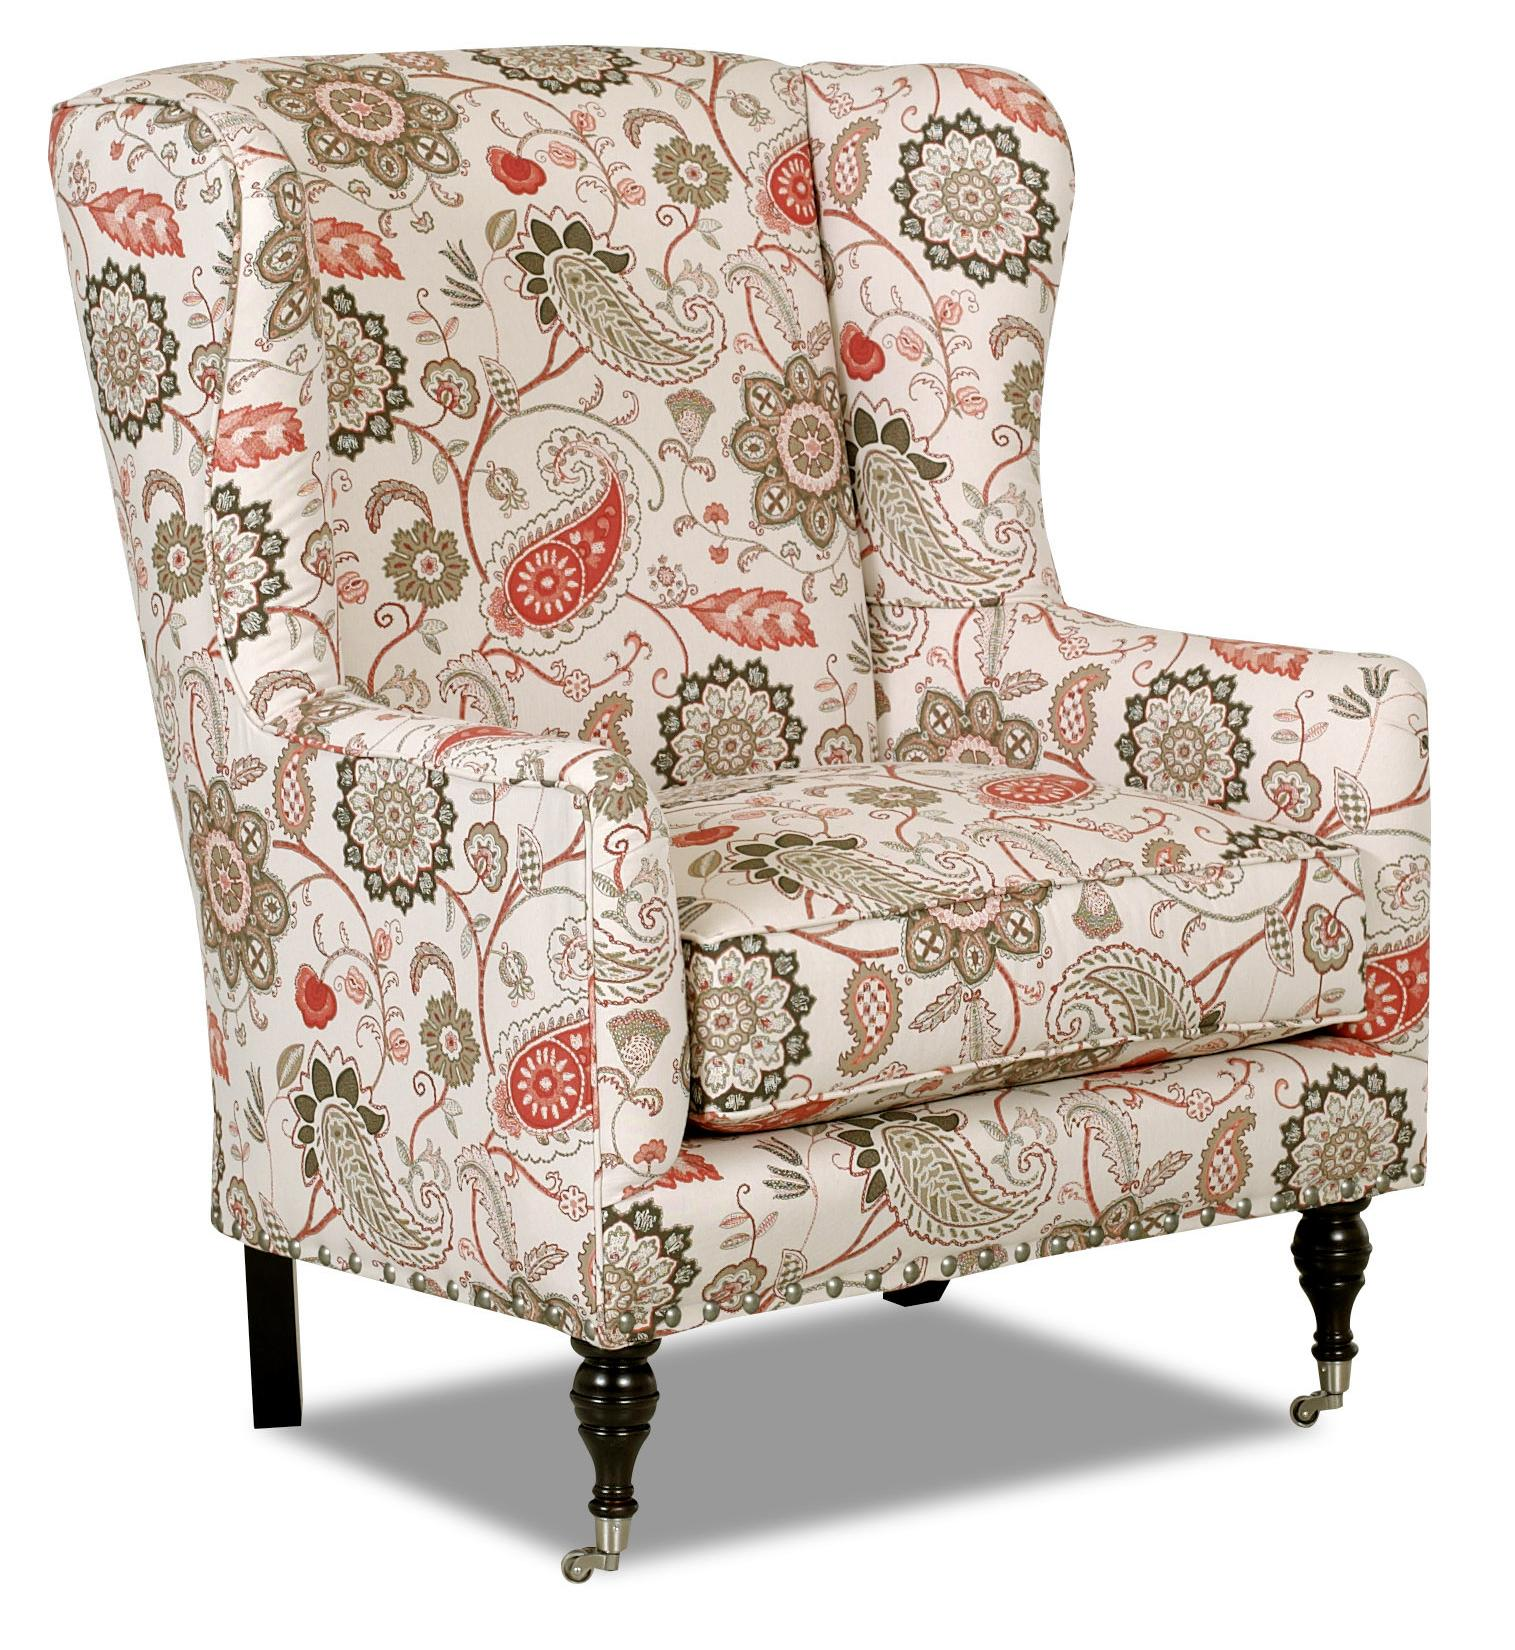 Klaussner Chairs and Accents Edenton Accent Chair - Item Number: D45710 OC